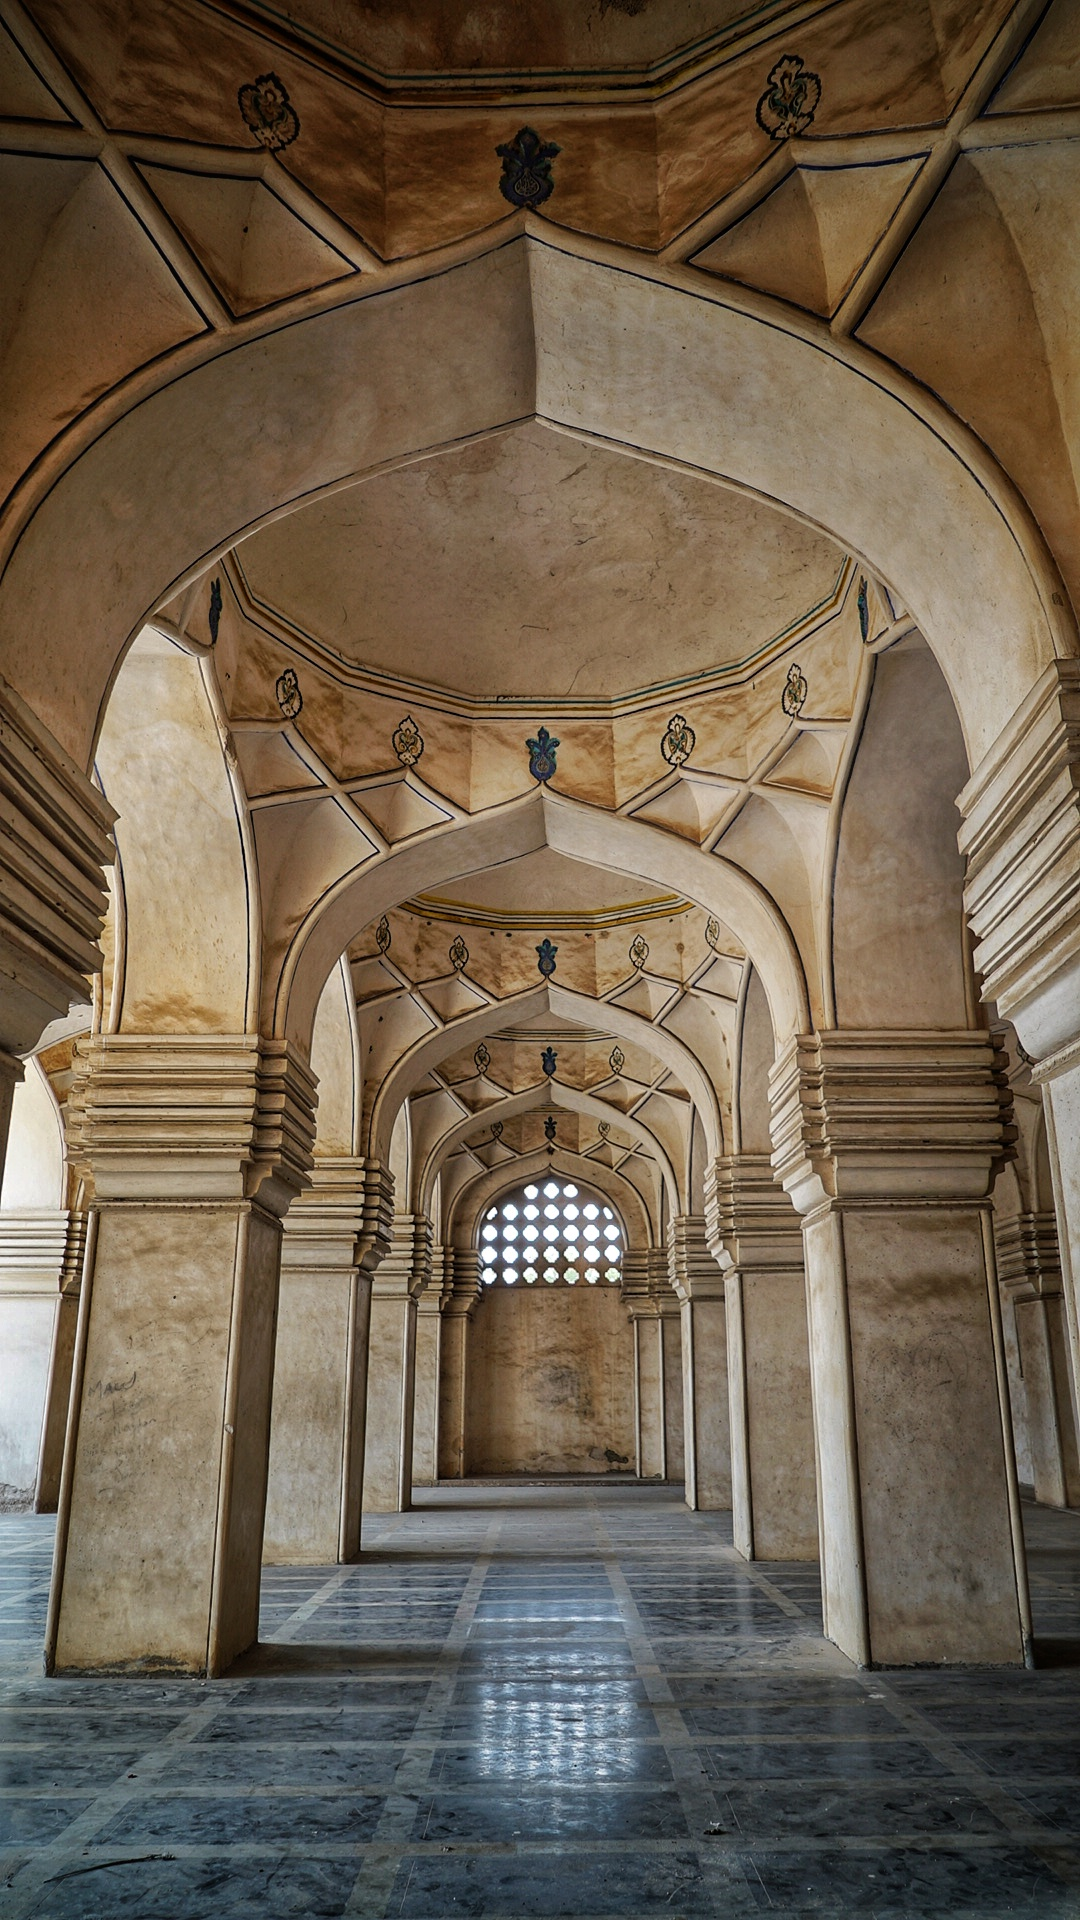 Arches in a mosque at the Qtub Shahi tombs, India